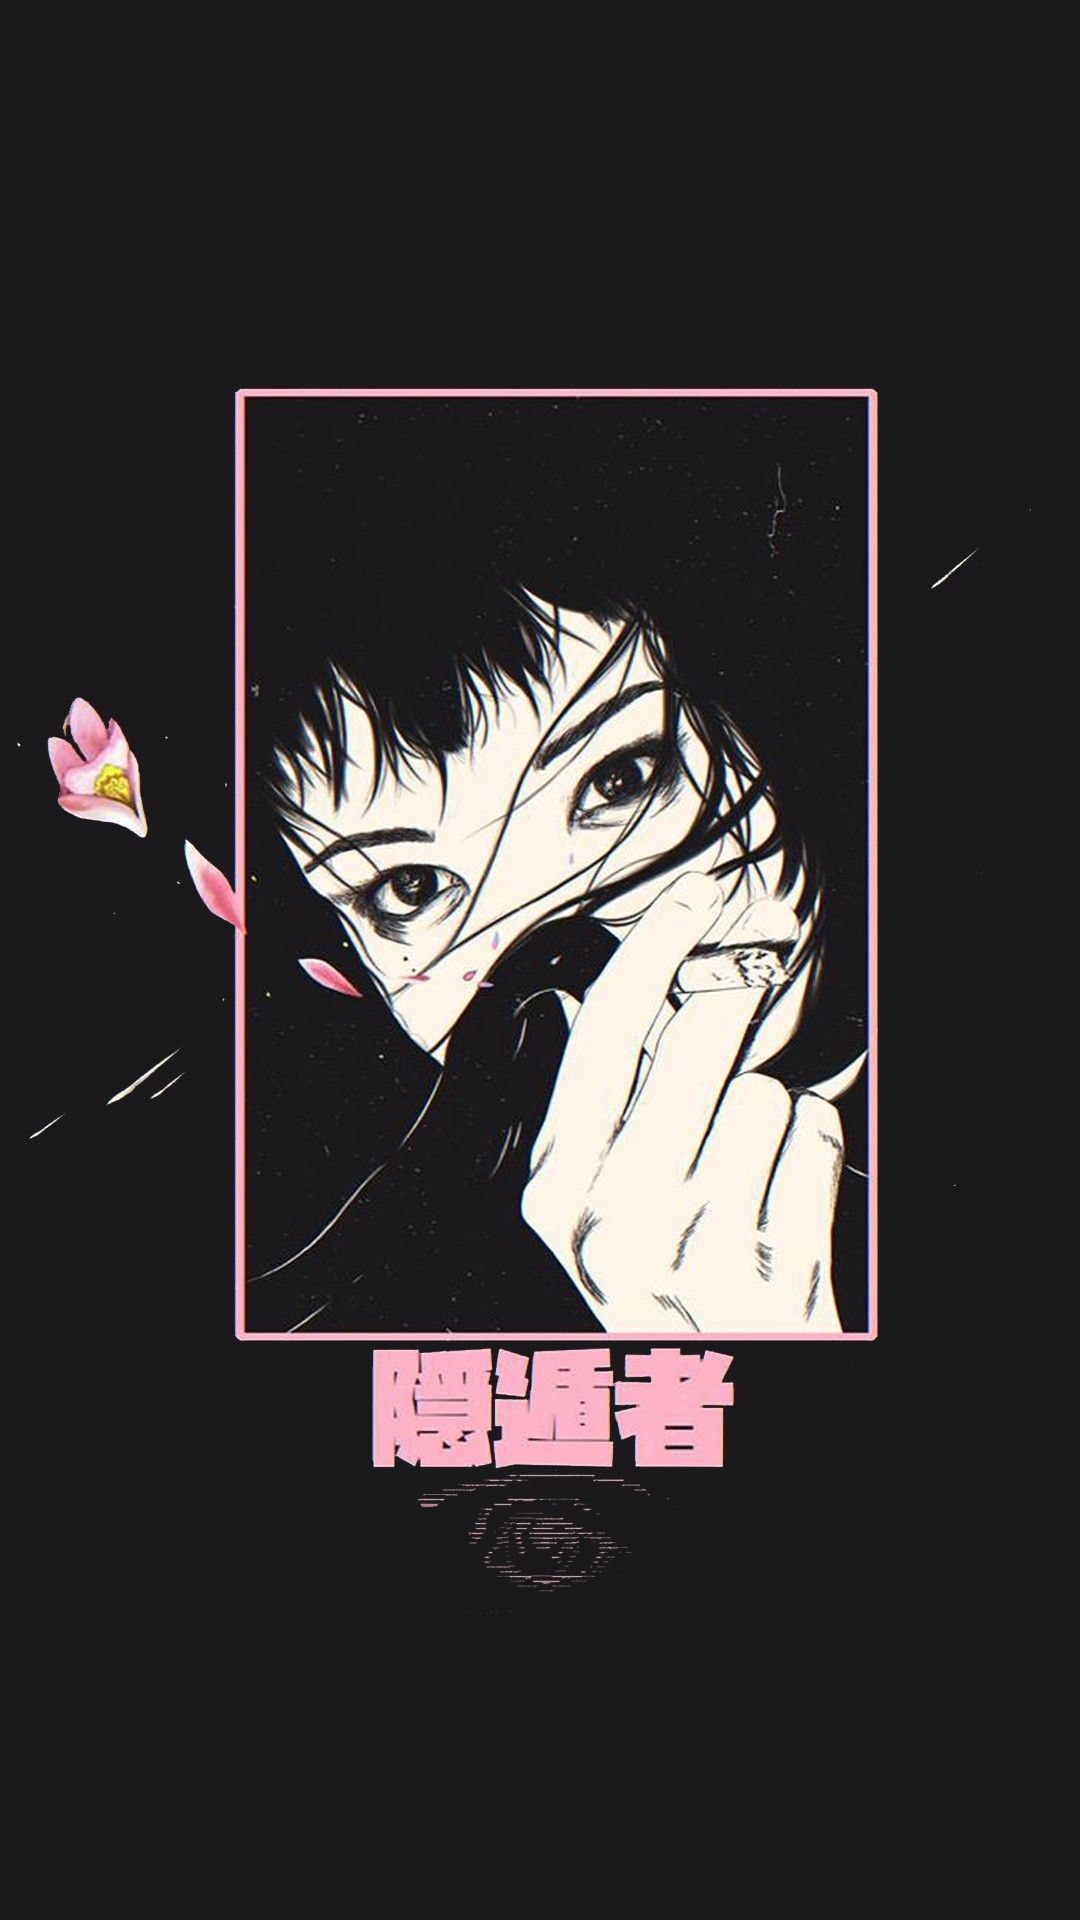 Aesthetic Anime Art Iphone Wallpaper Anime Wallpapers